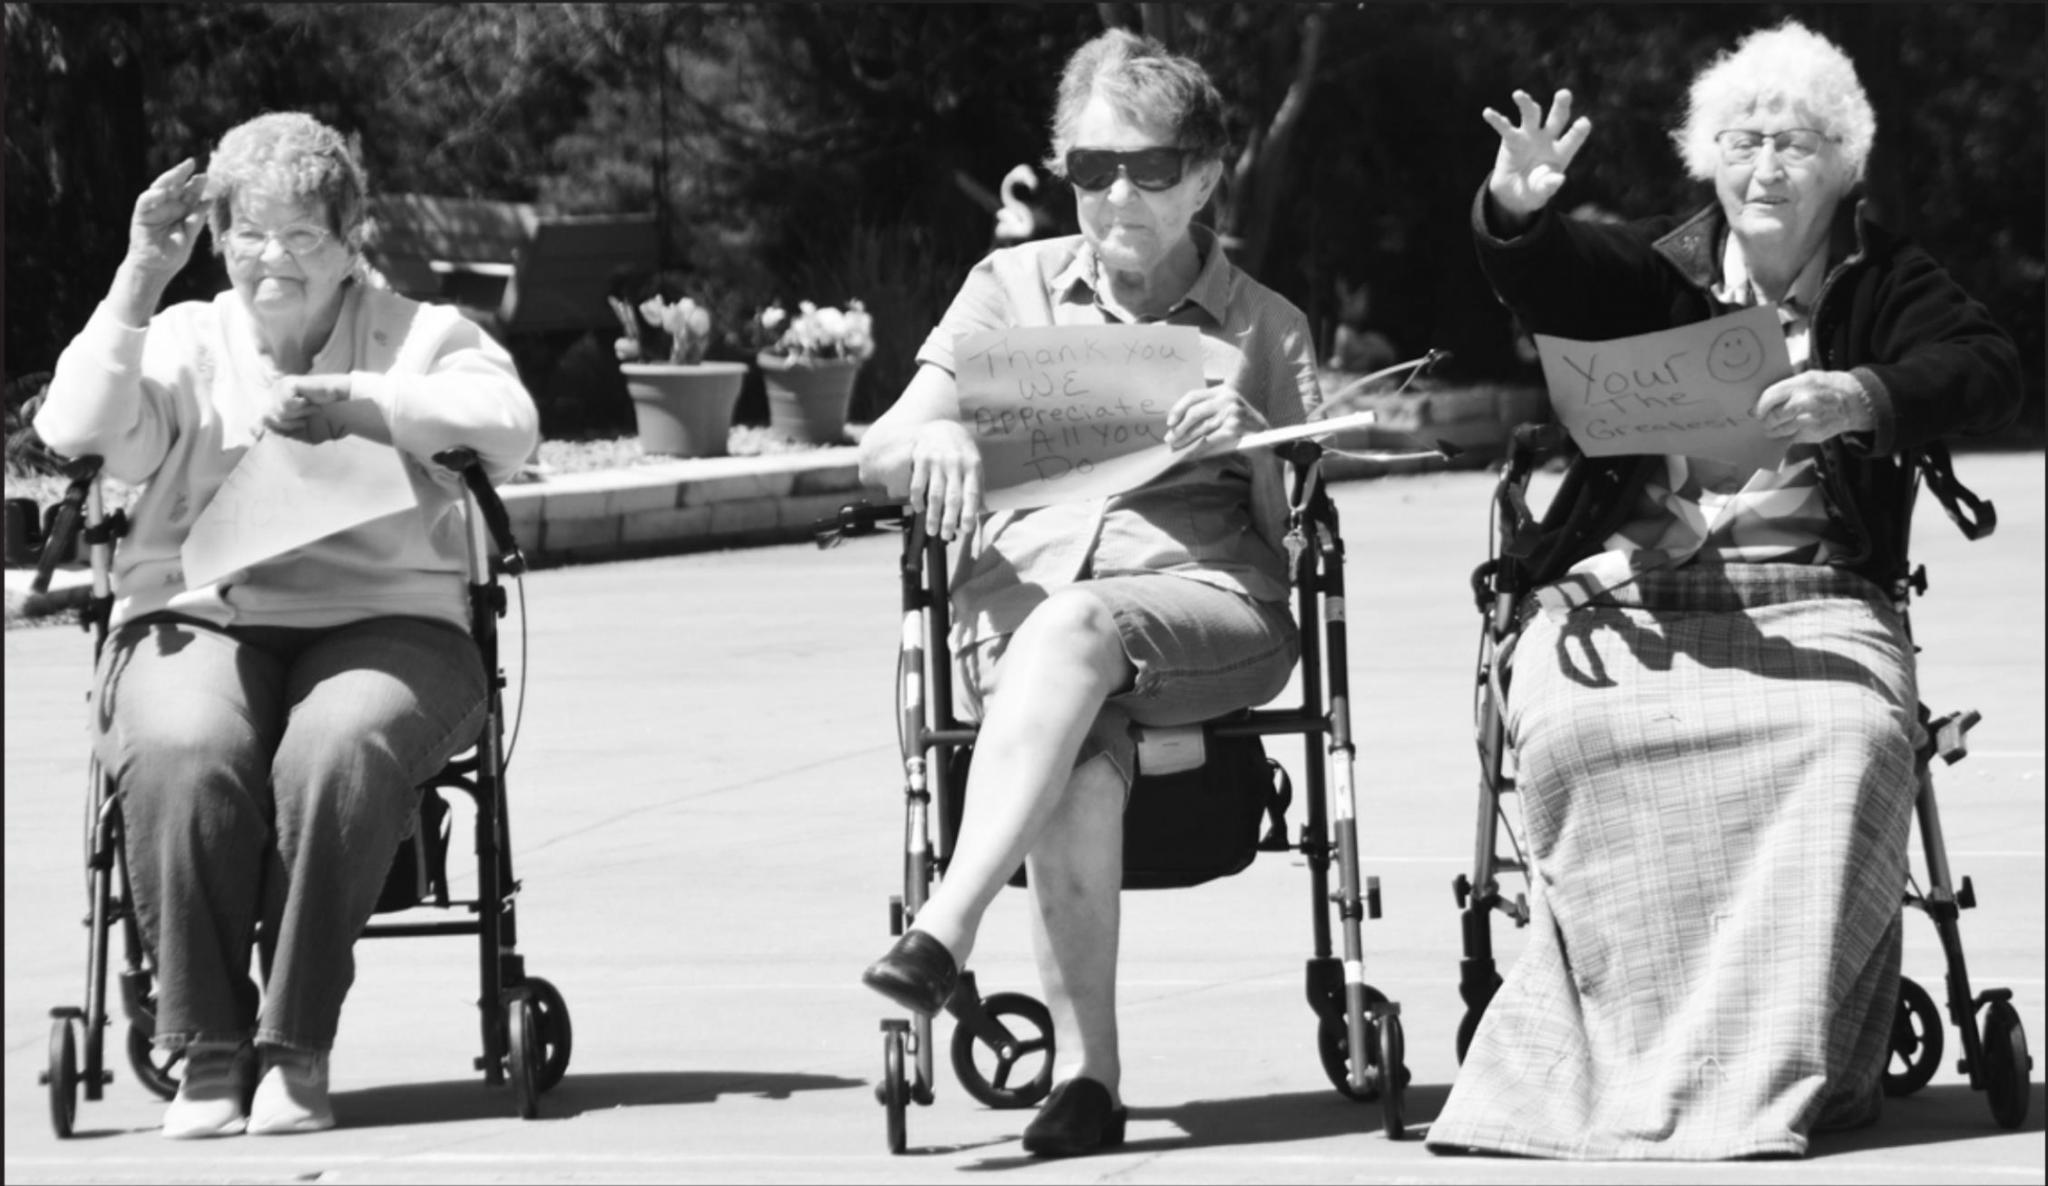 From left to right: Charlotte Hanson, Dolores Obermueller and Alvera Long provide waves and signs of appreciation to drive-by parade attendees during the Hilltop Lodge parade event on Tuesday.